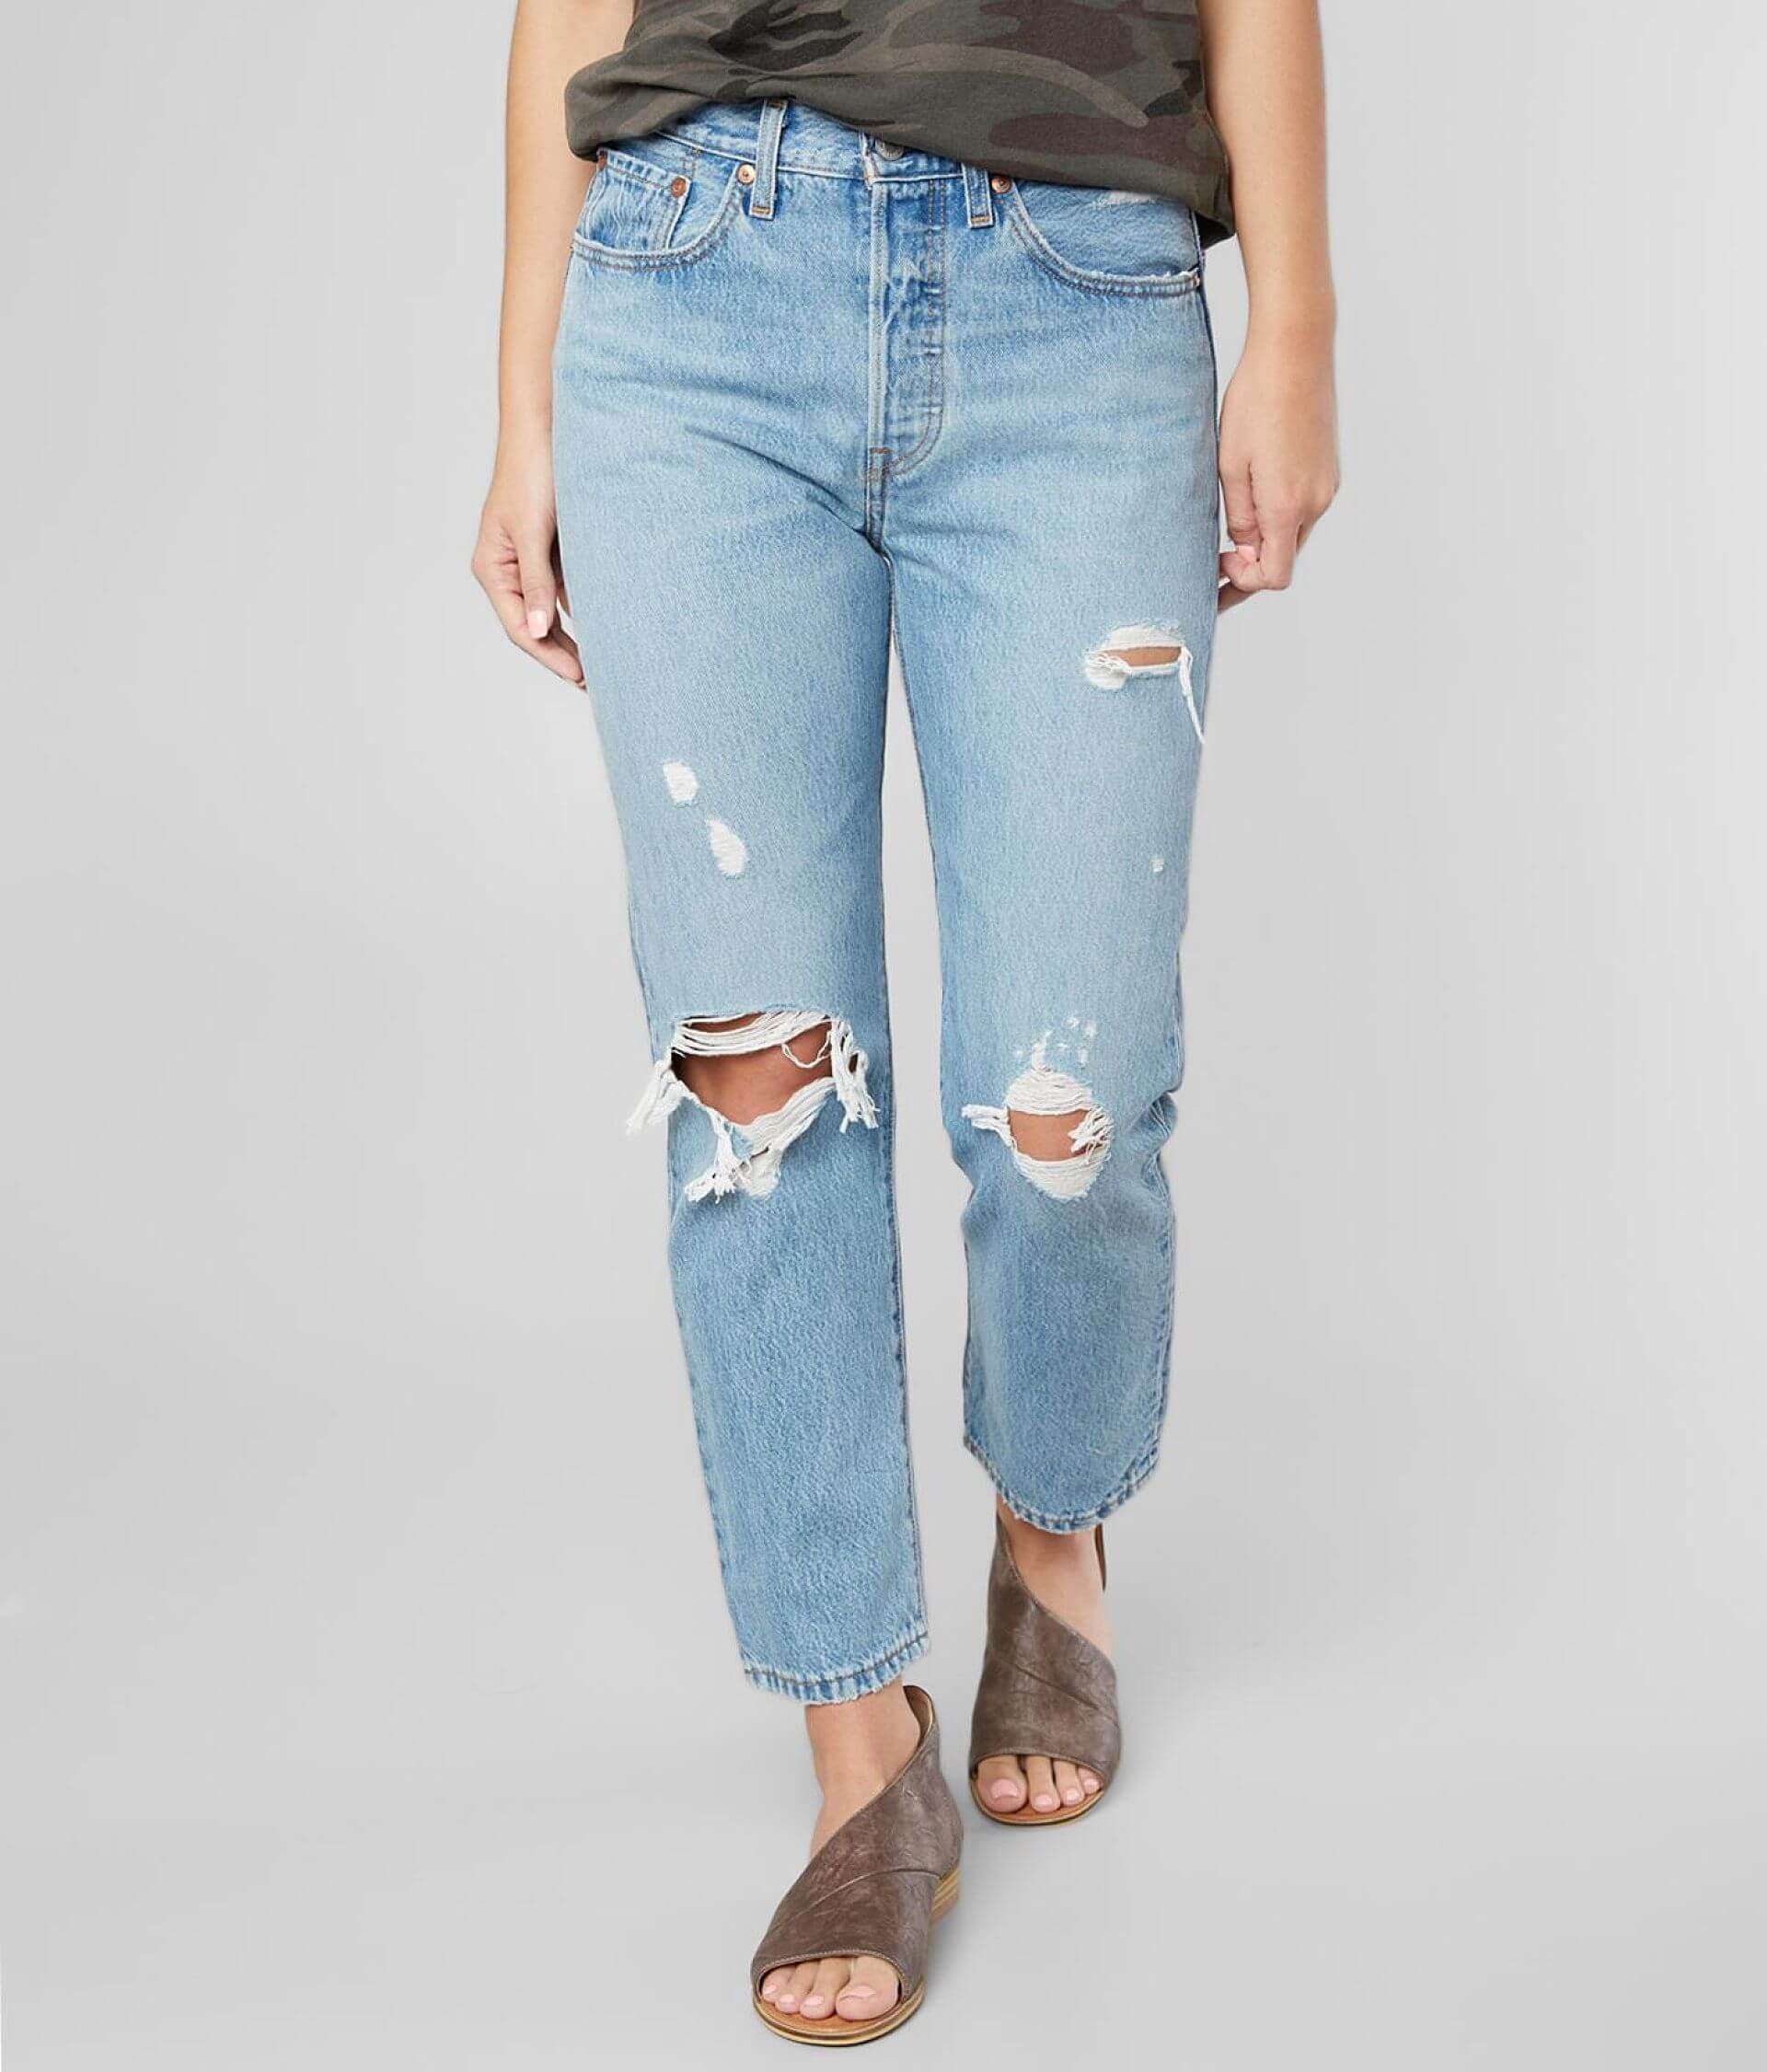 f1236c35eef Levi's® High Rise Wedgie Jean - Women's Jeans in Authentically Yours ...